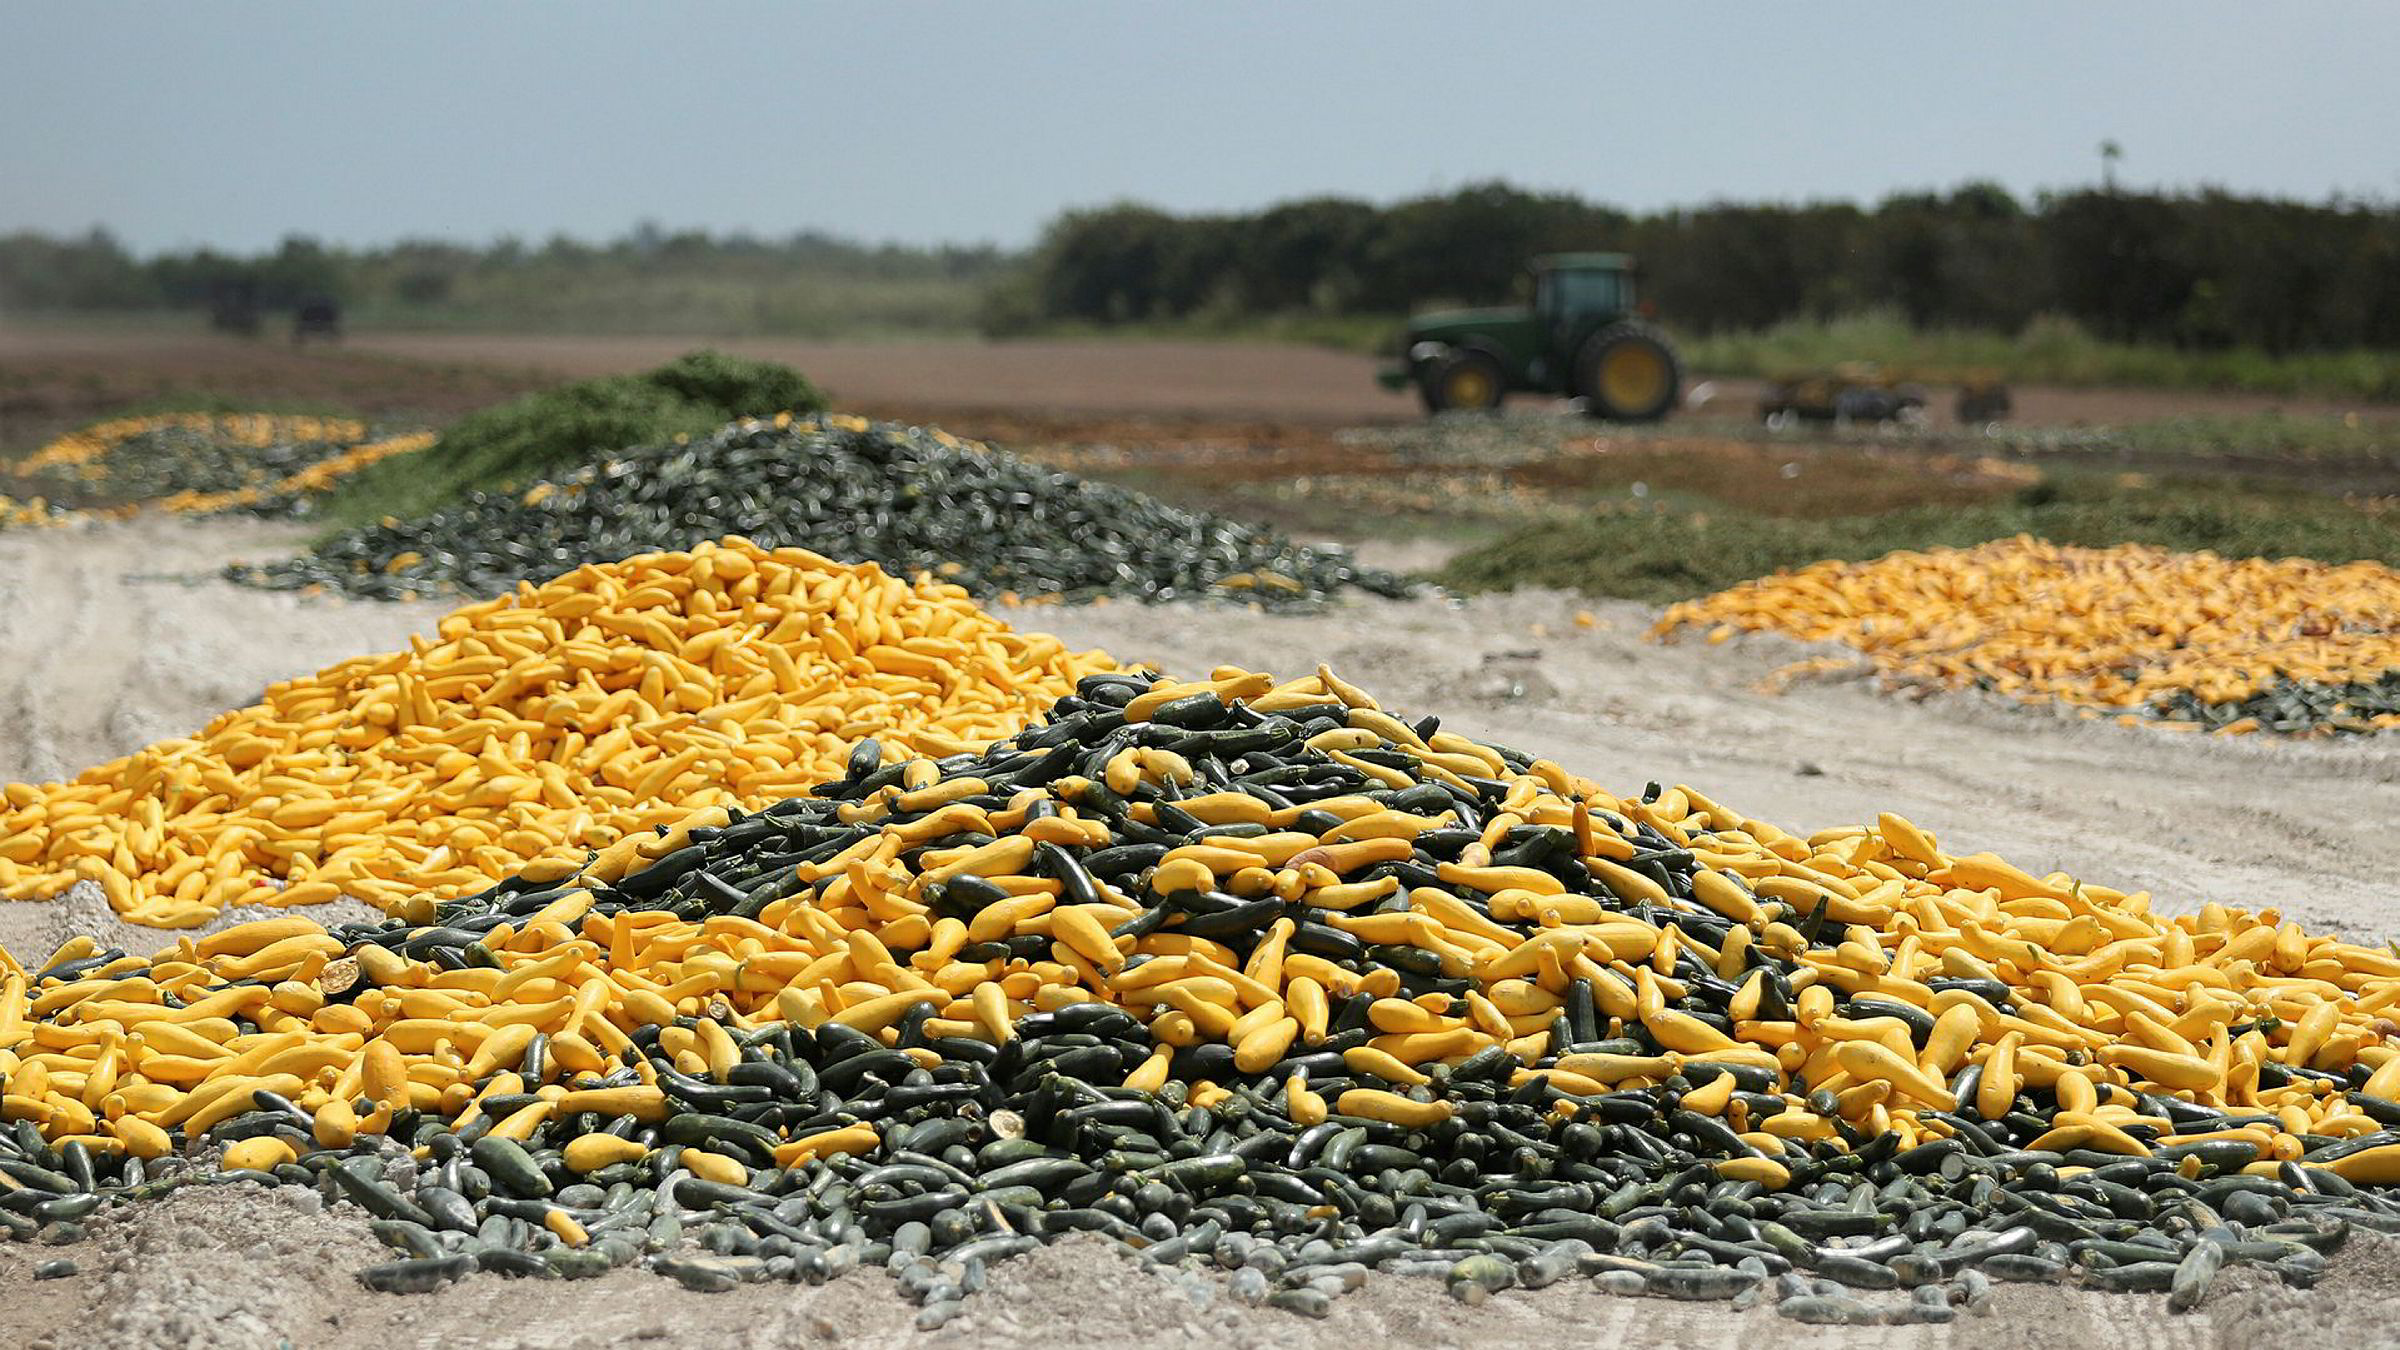 FLORIDA CITY, FLORIDA - APRIL 01: A pile of zucchini and squash is seen after it was discarded by a farmer on April 01, 2020 in Florida City, Florida. Many South Florida farmers are saying that the coronavirus pandemic has caused them to have to throw crops away due to less demand for produce in stores and restaurants. (Photo by Joe Raedle/Getty Images) x. x.Hauger av ulike typer